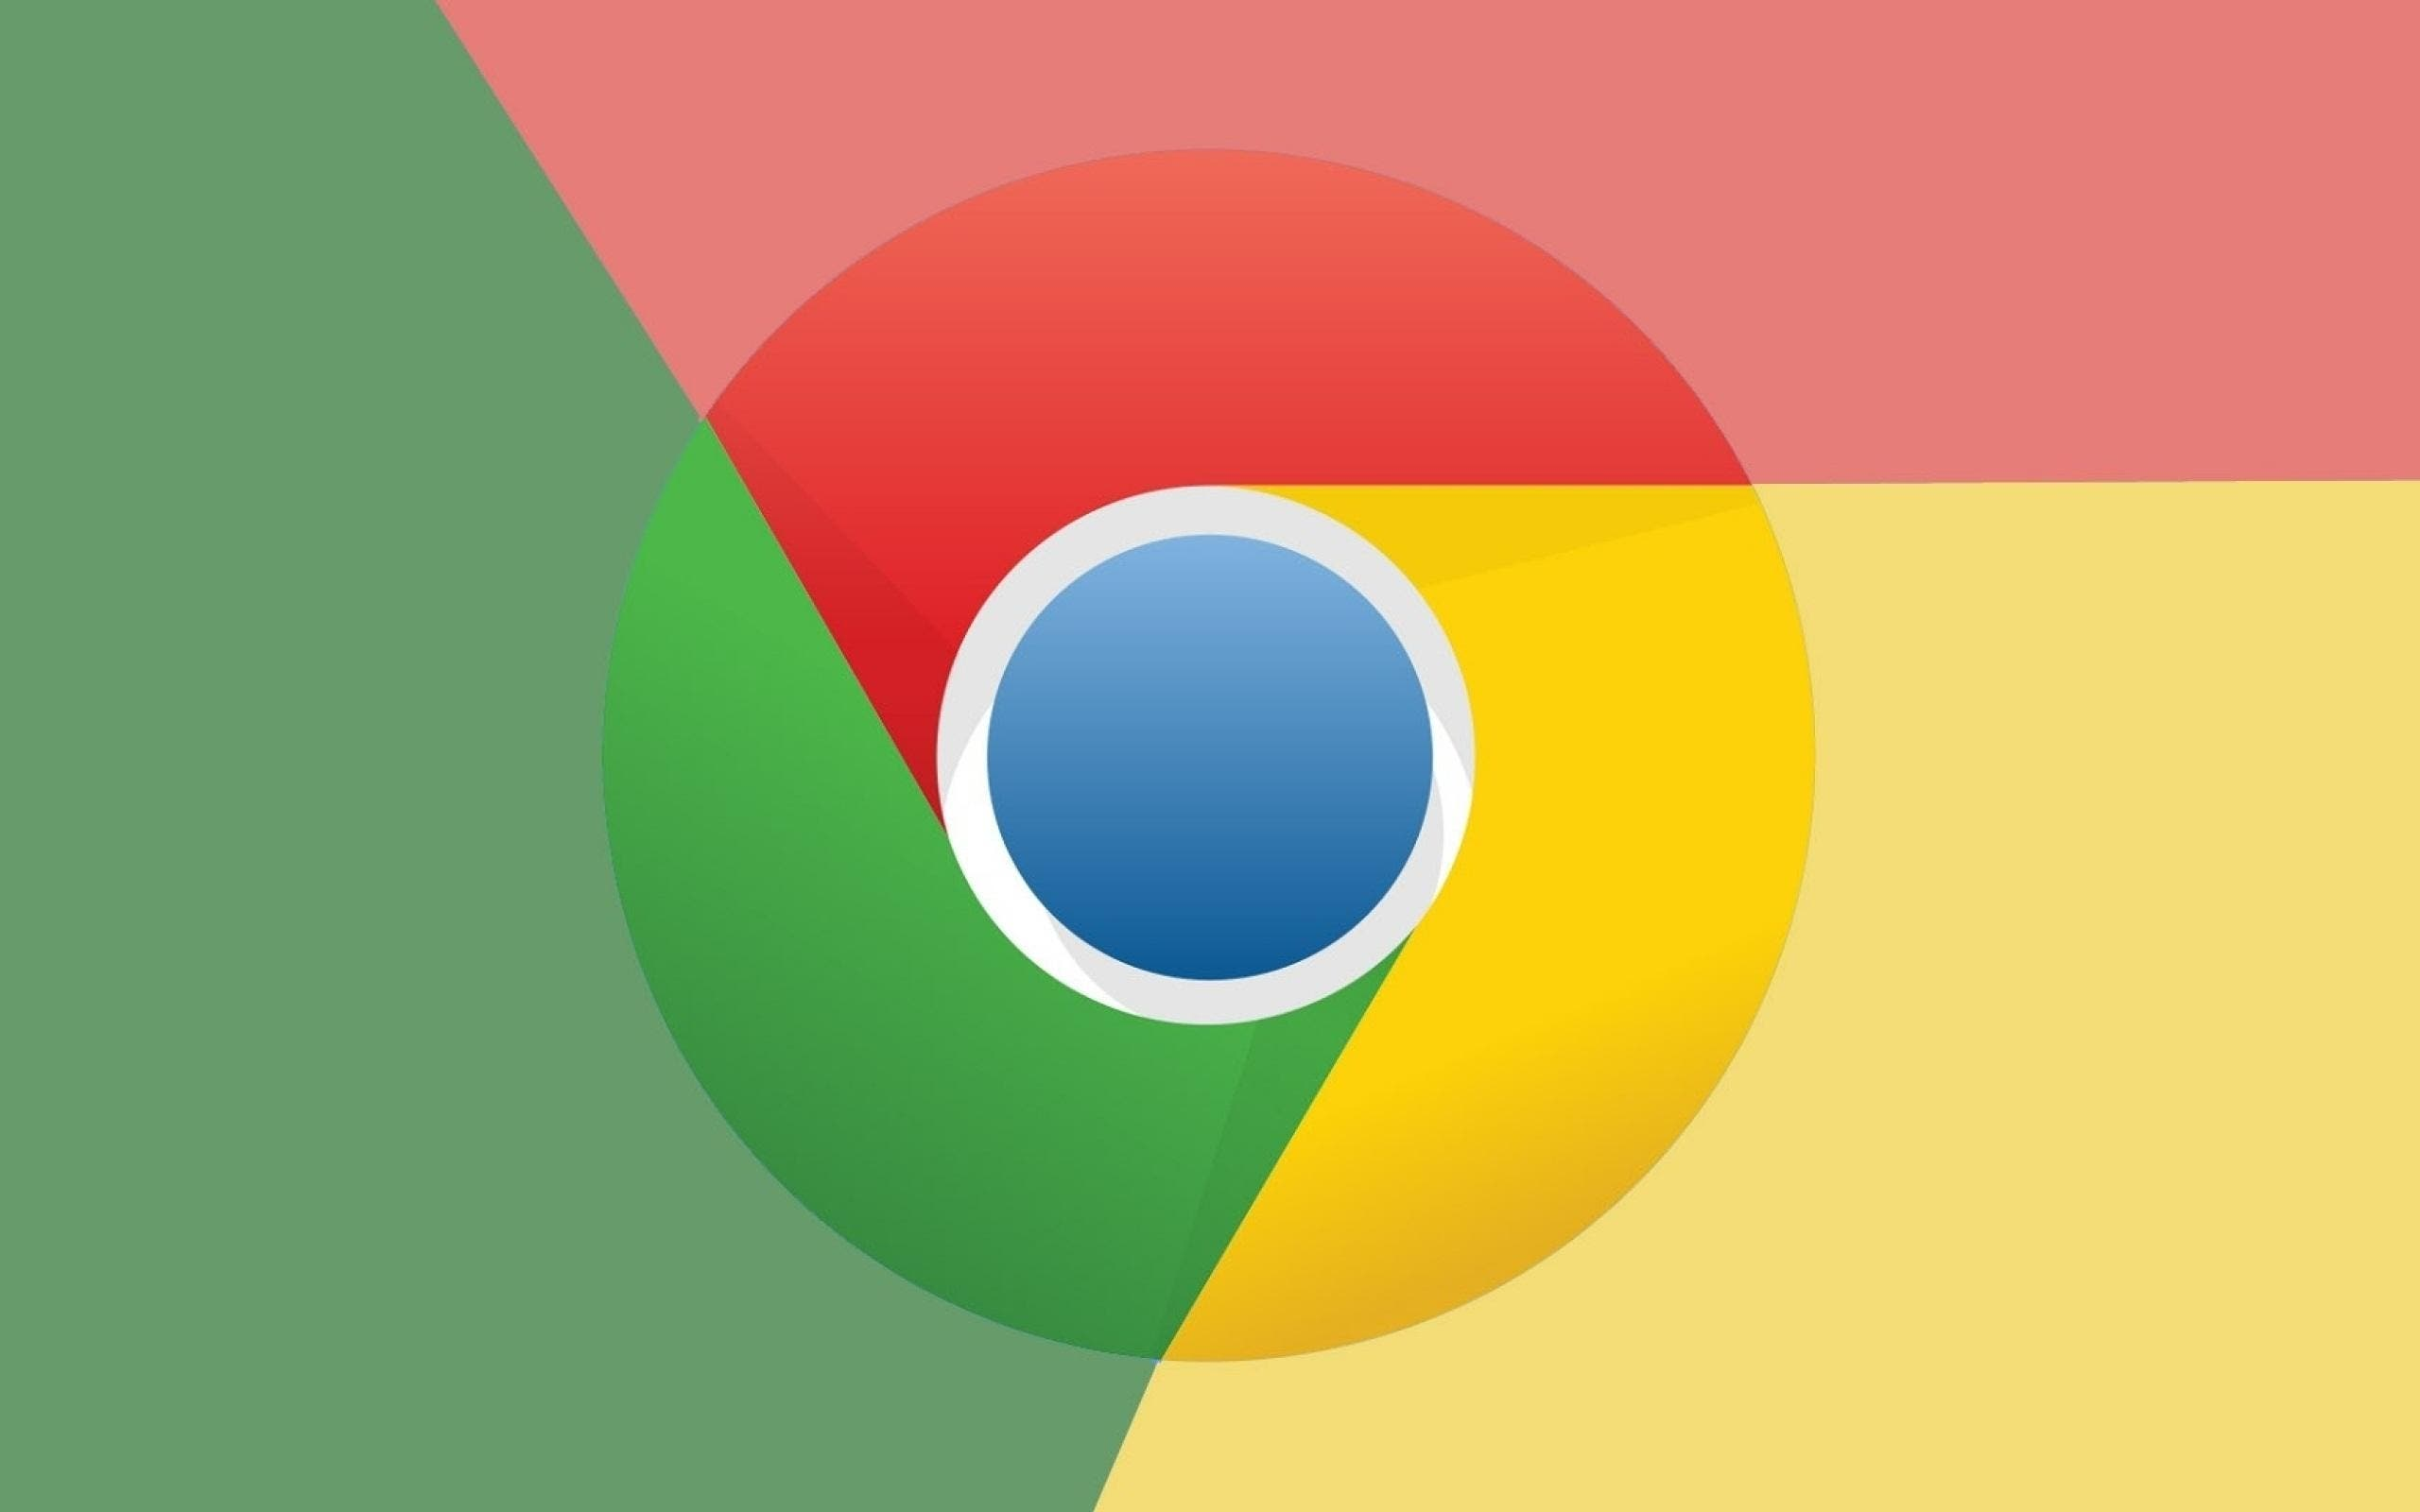 Google Chrome - Wallpaper